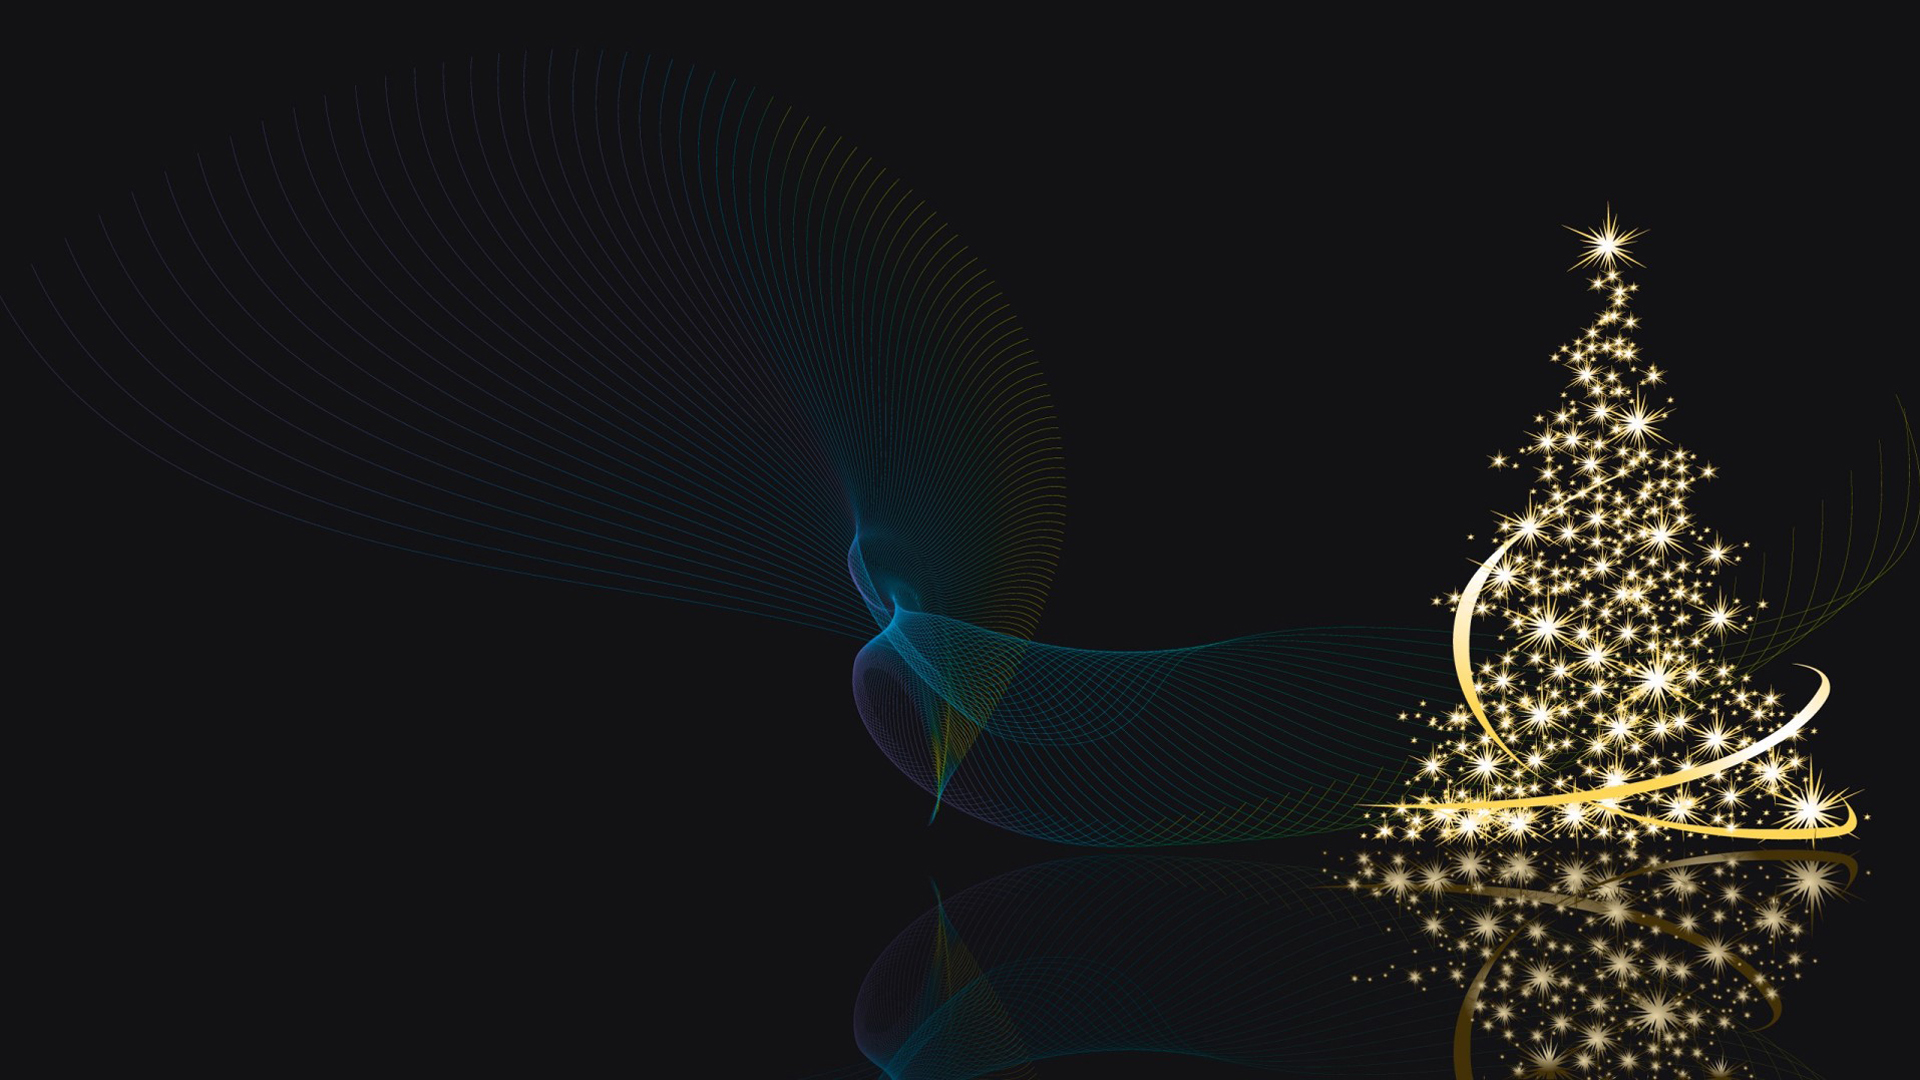 hd christmas wallpapers | pixelstalk